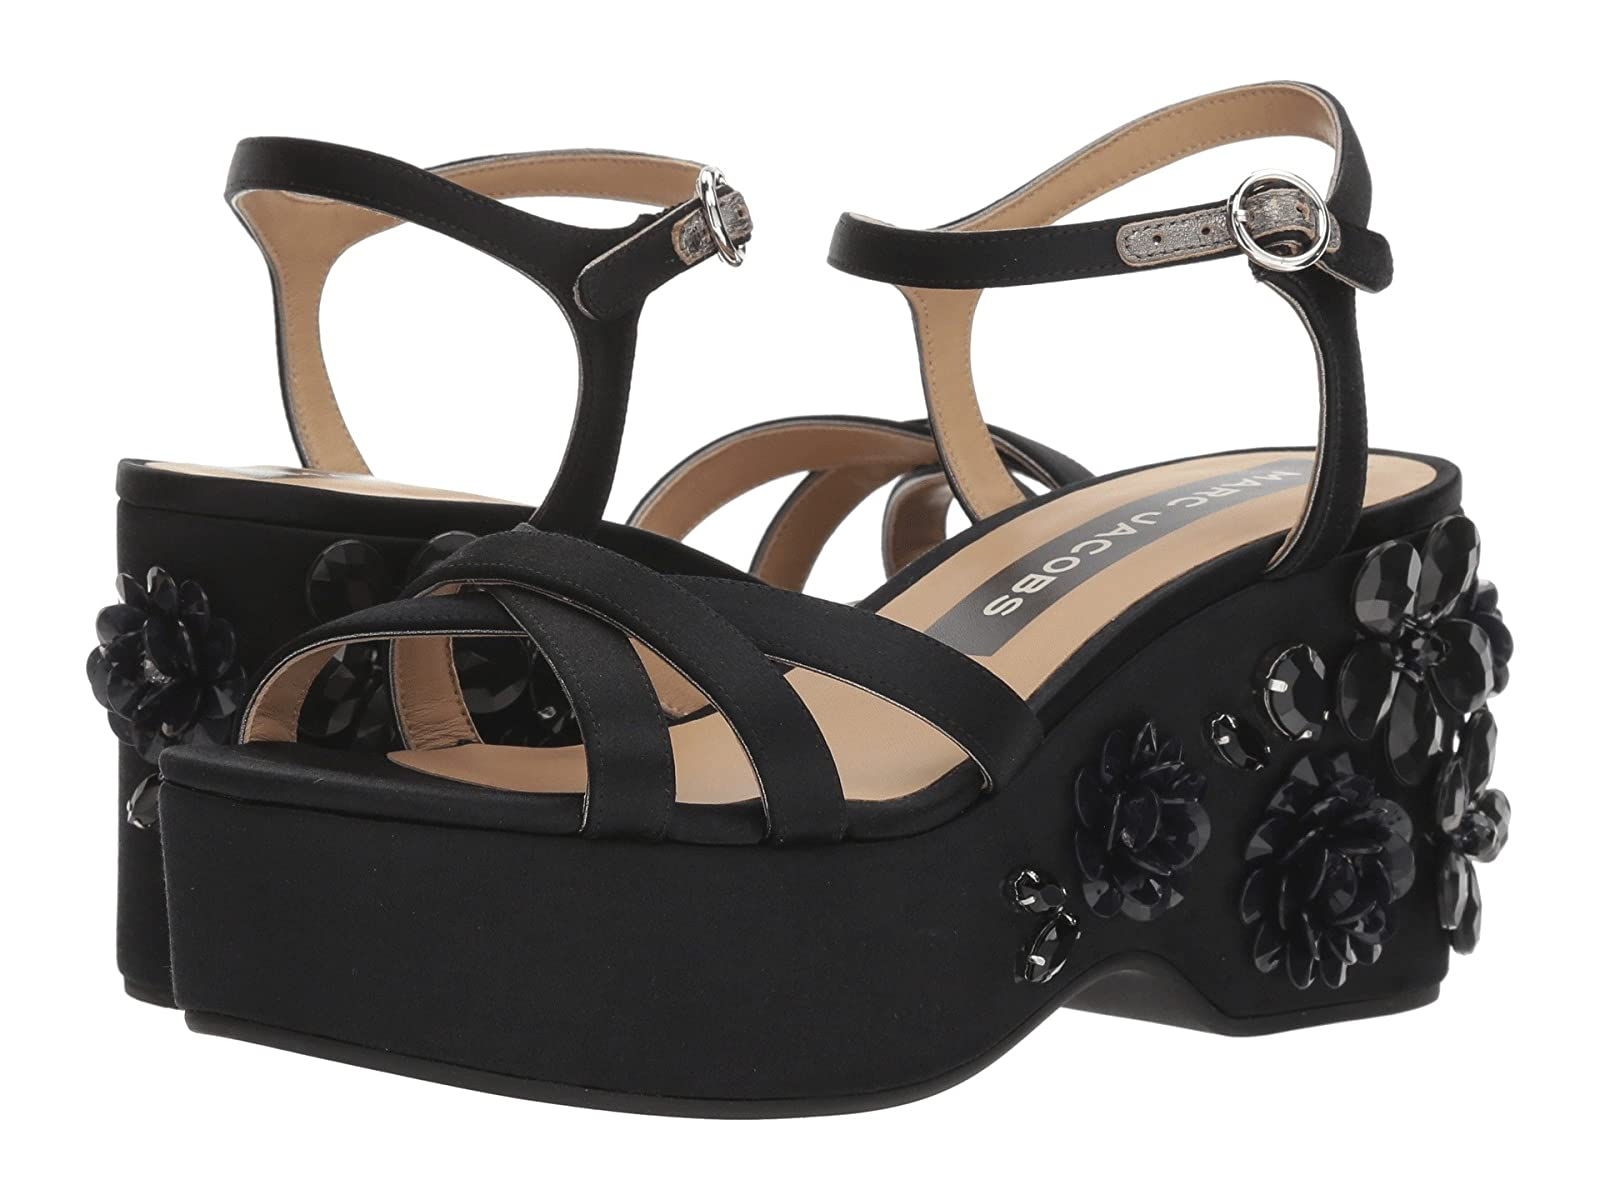 Marc Jacobs Callie Embellished Wedge SandalCheap and distinctive eye-catching shoes